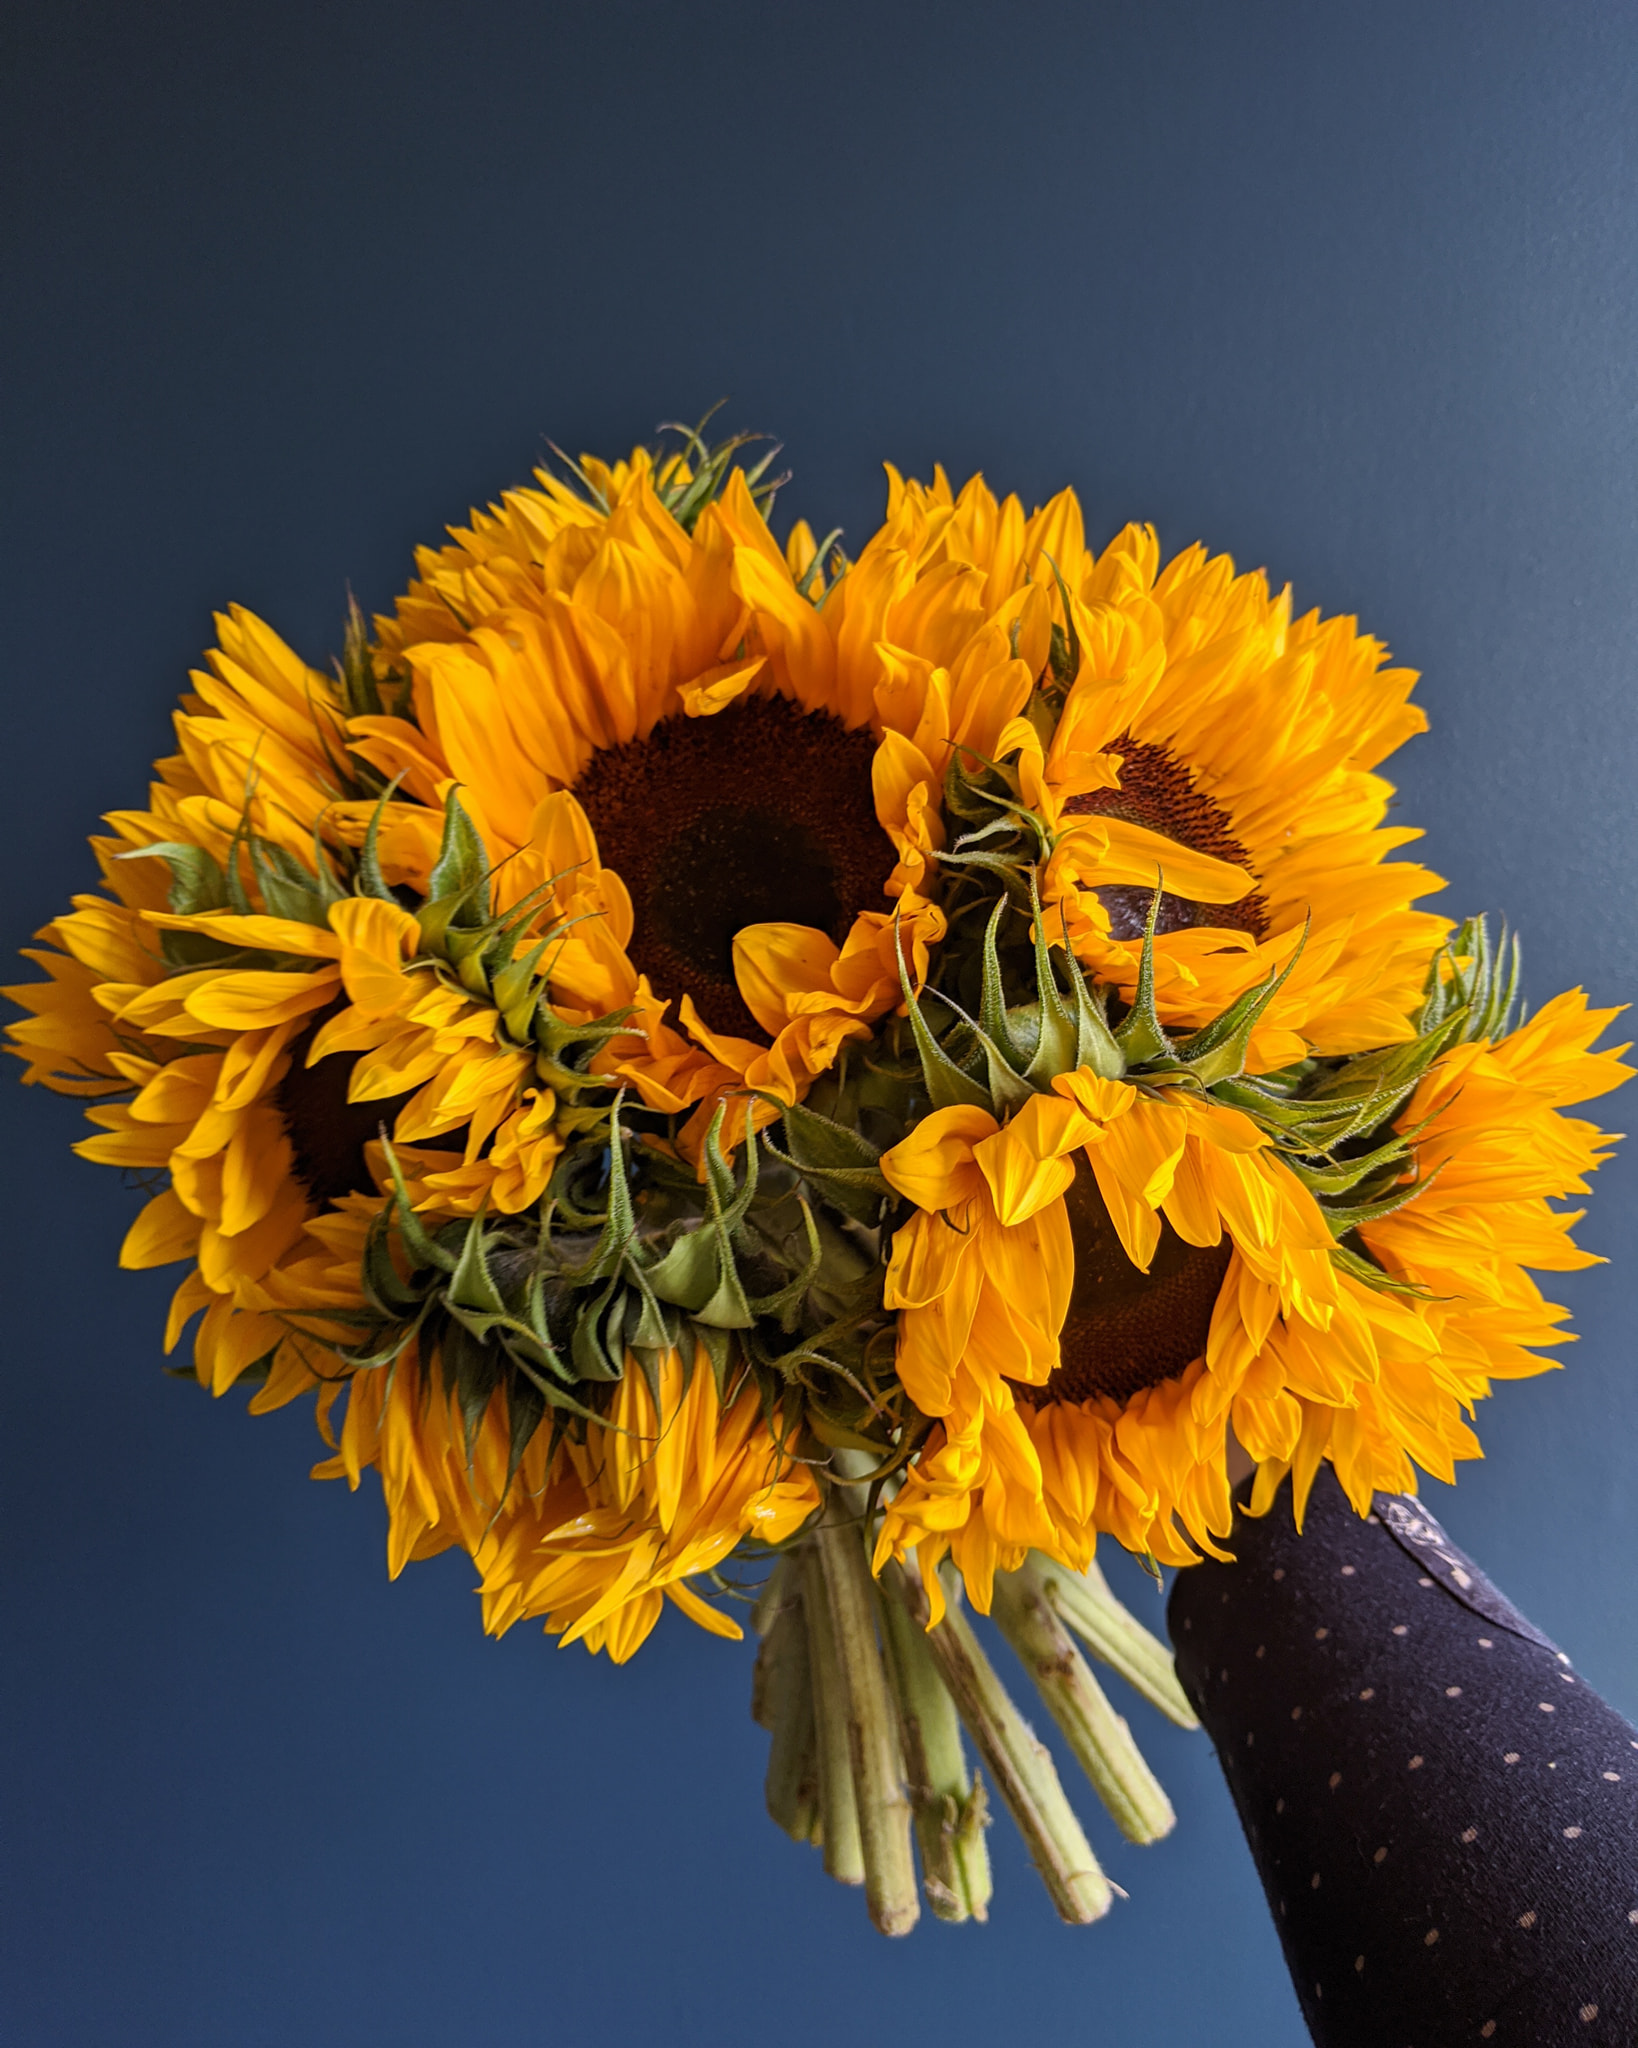 arena flowers subscription review sunflowers liquid grain